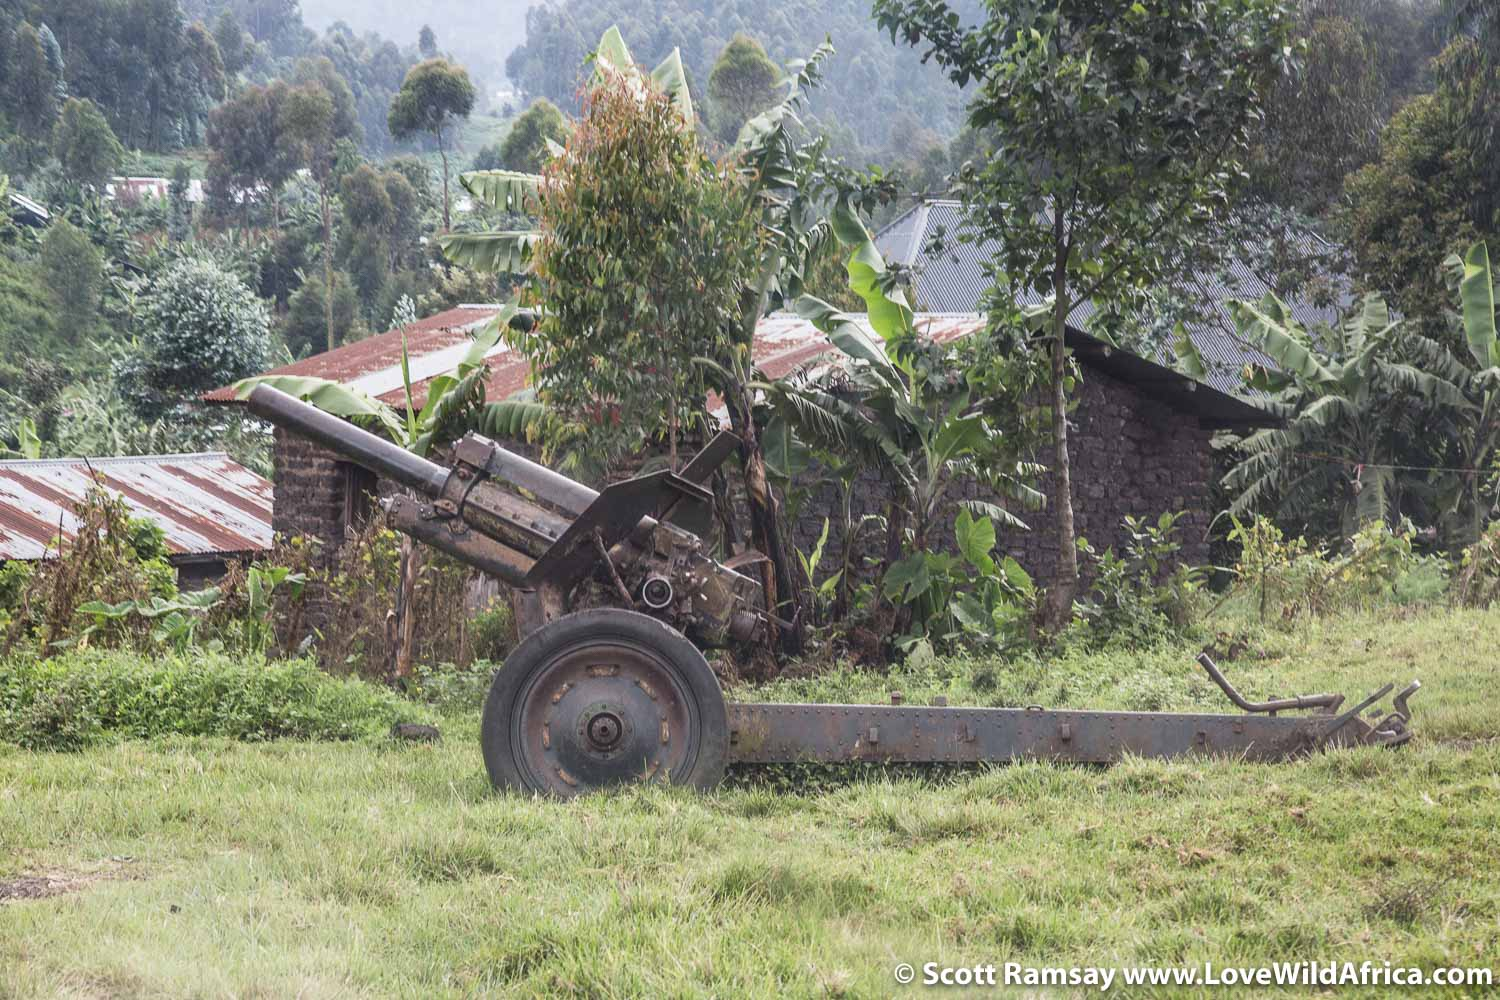 There are constant reminders of the region's warring past. This cannon is on the road from Goma to Rumangabo.